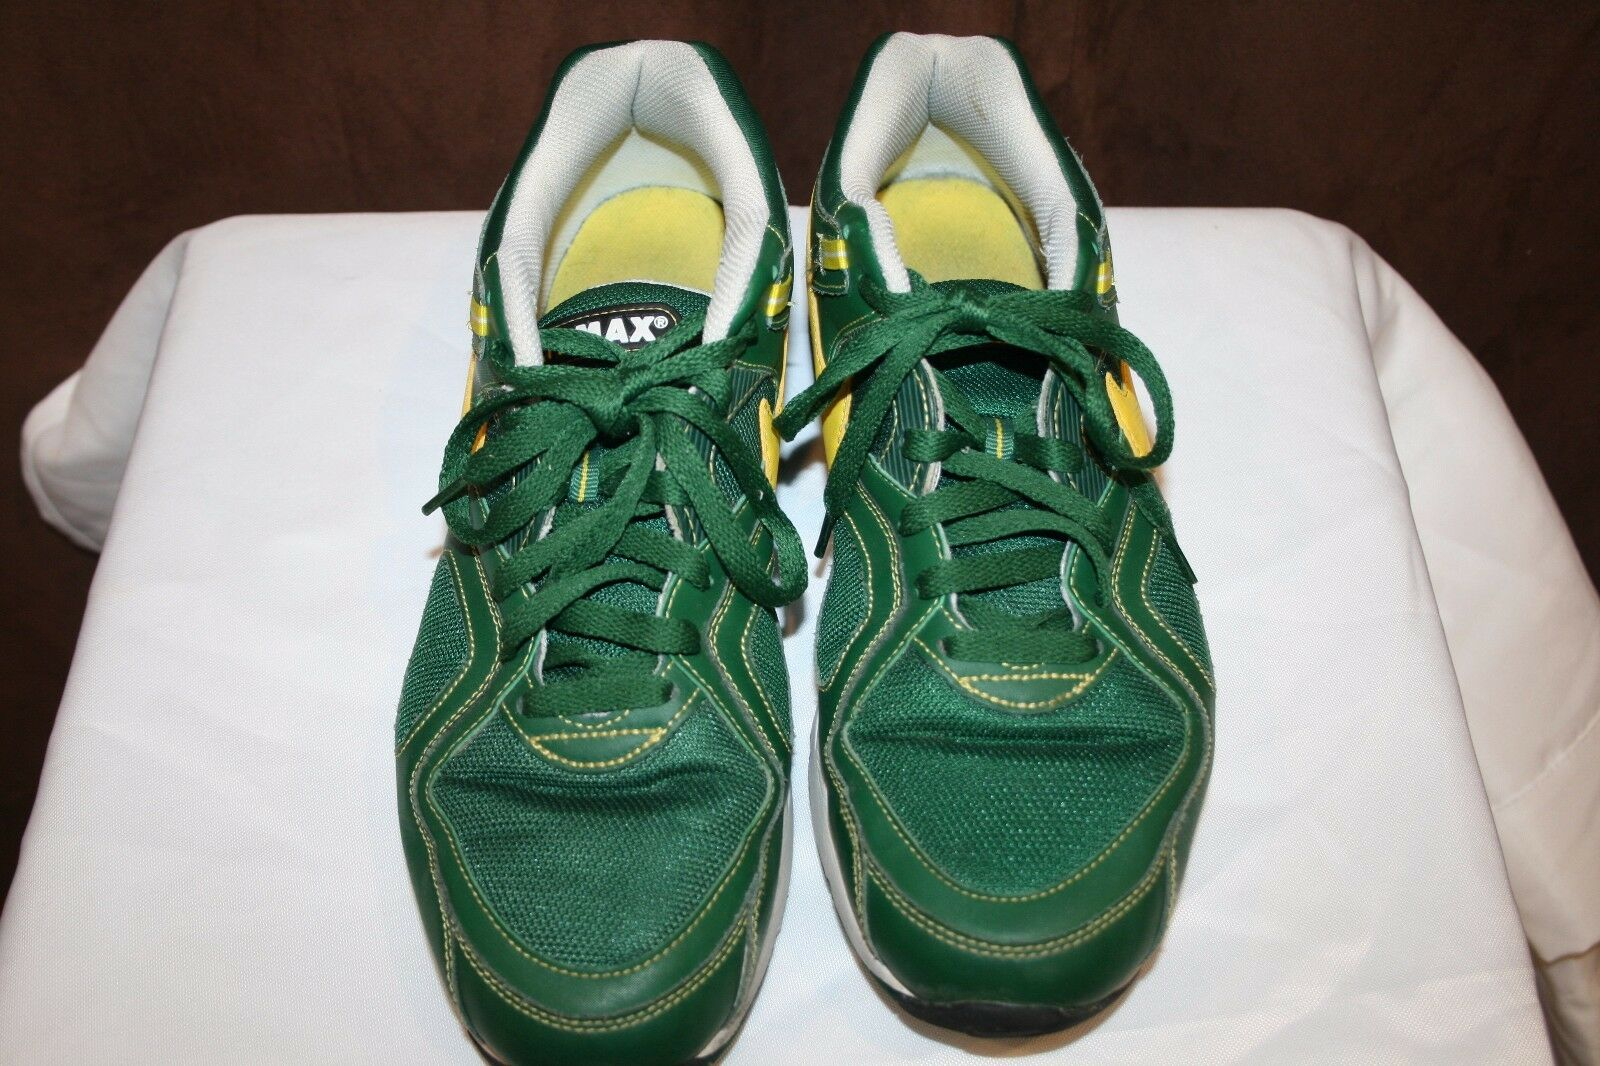 Nike Air Max Sneaker shoes Mens Size US 12 Green Yellow Swoosh